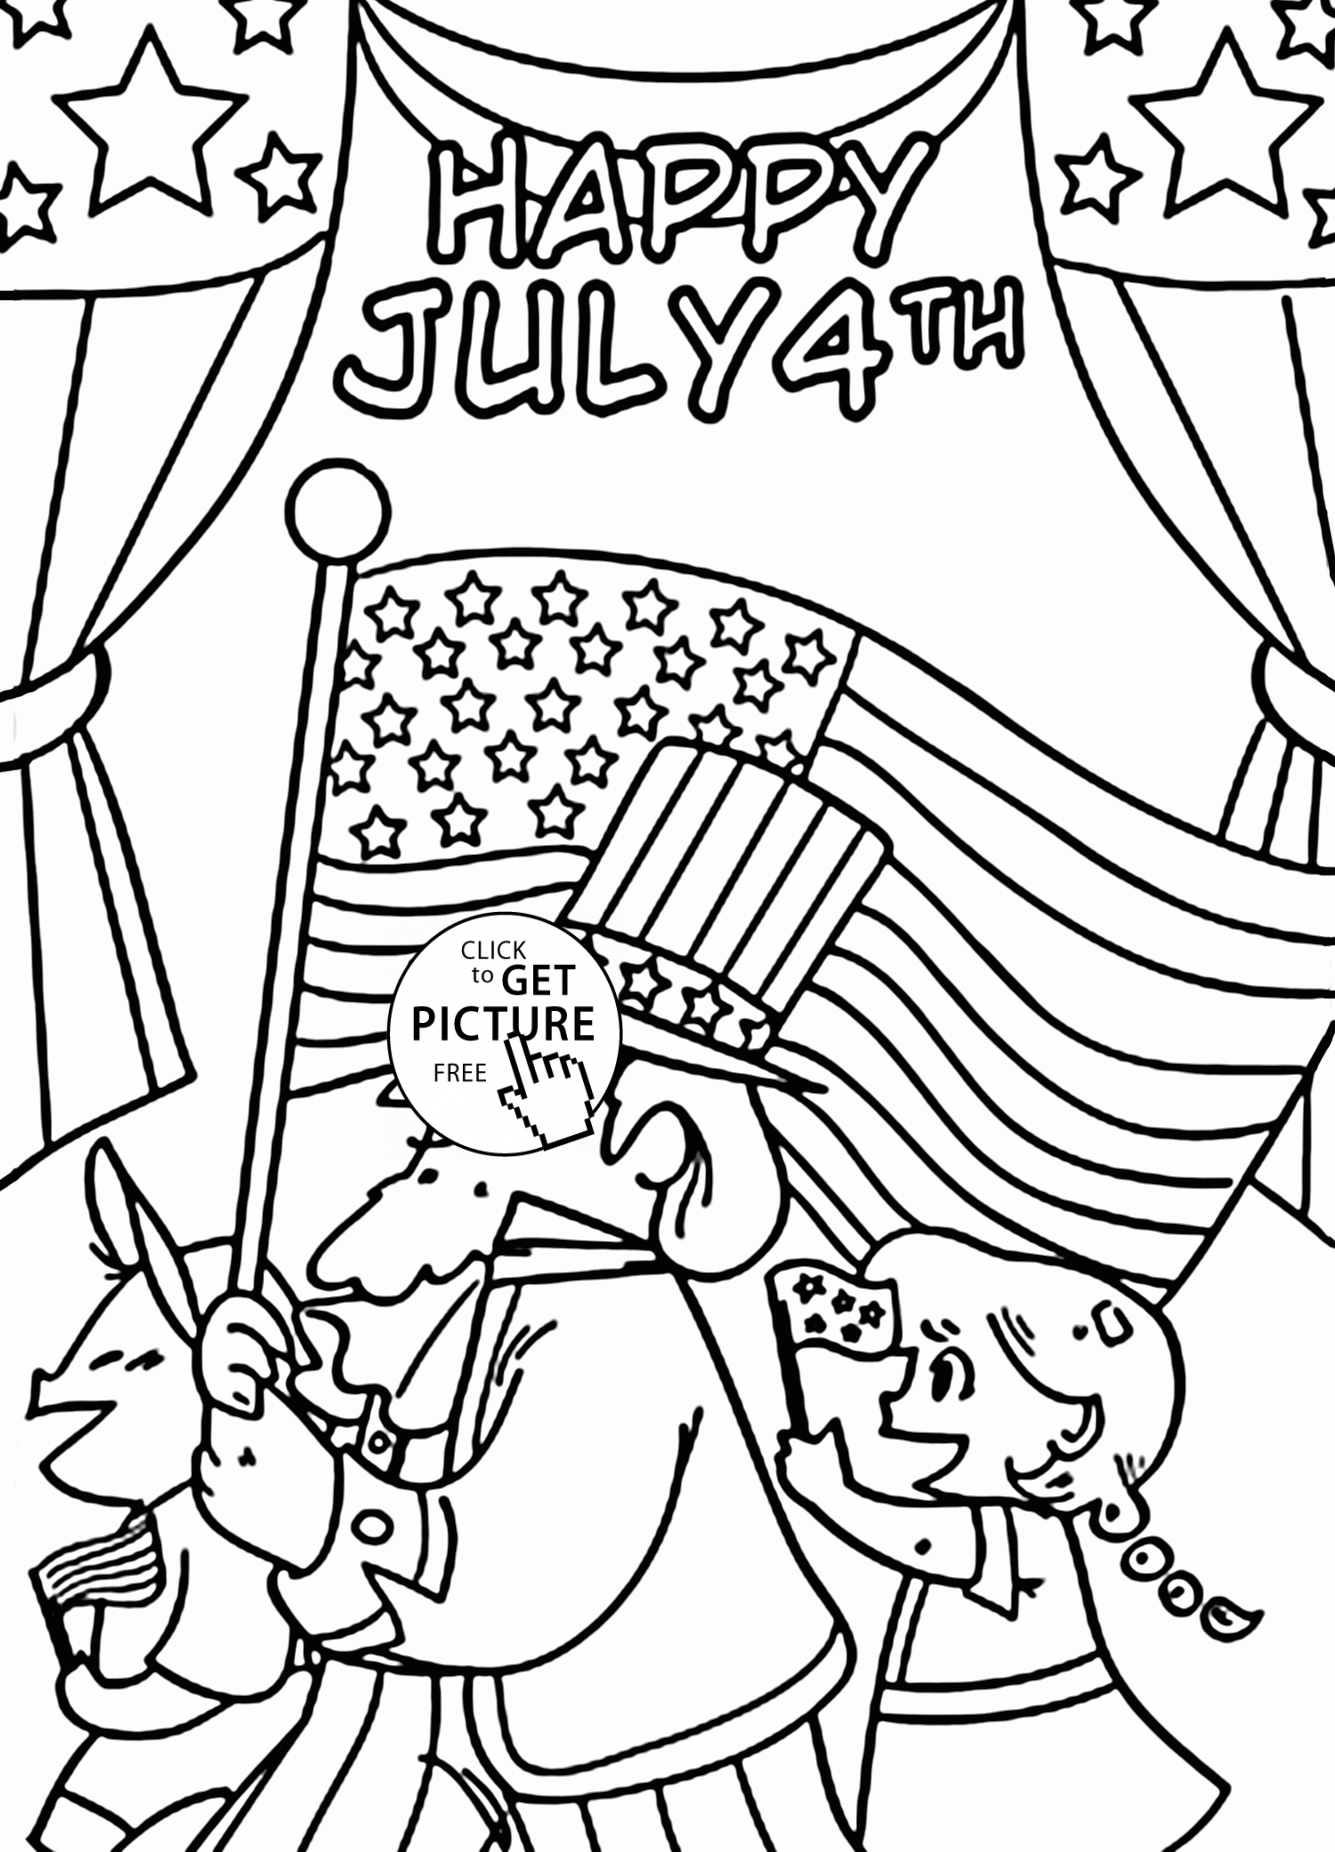 1335x1852 Fourth Of July Coloring Pages New Happy July Coloring Pages